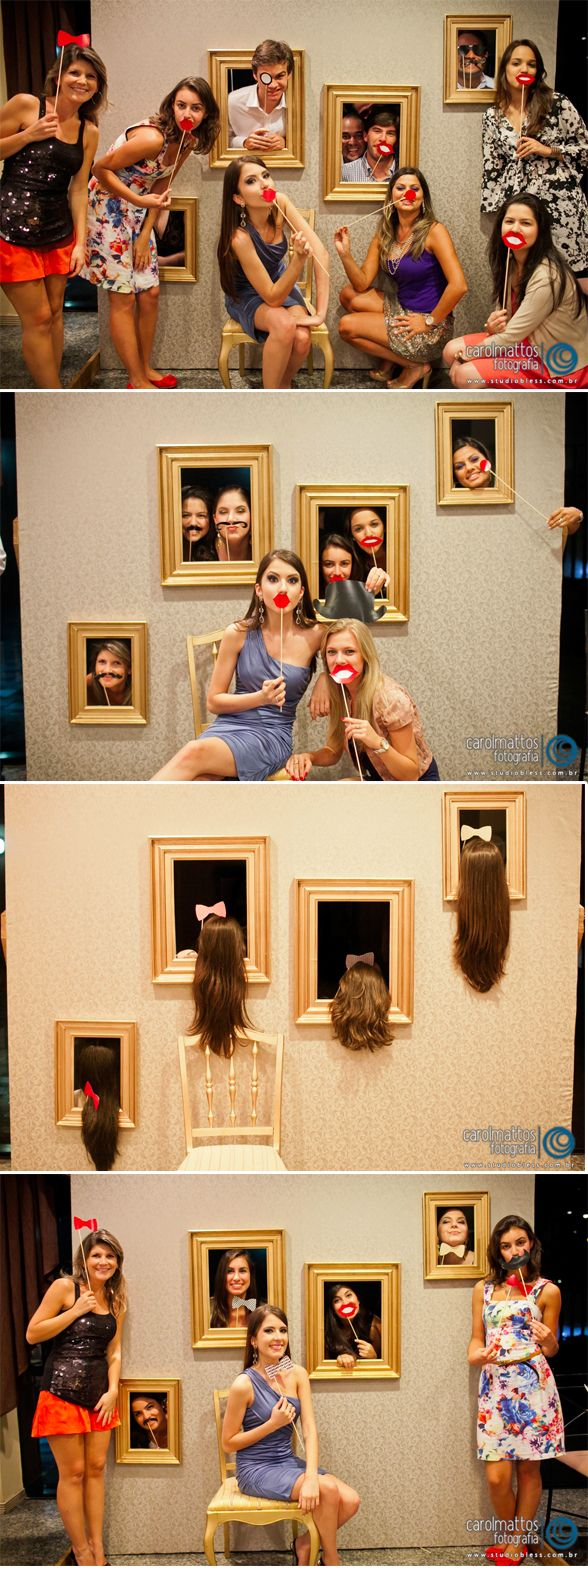 MUST HAVE THIS PHOTO BOOTH WALL!!! Would be perfect for junior high & high school GS event.